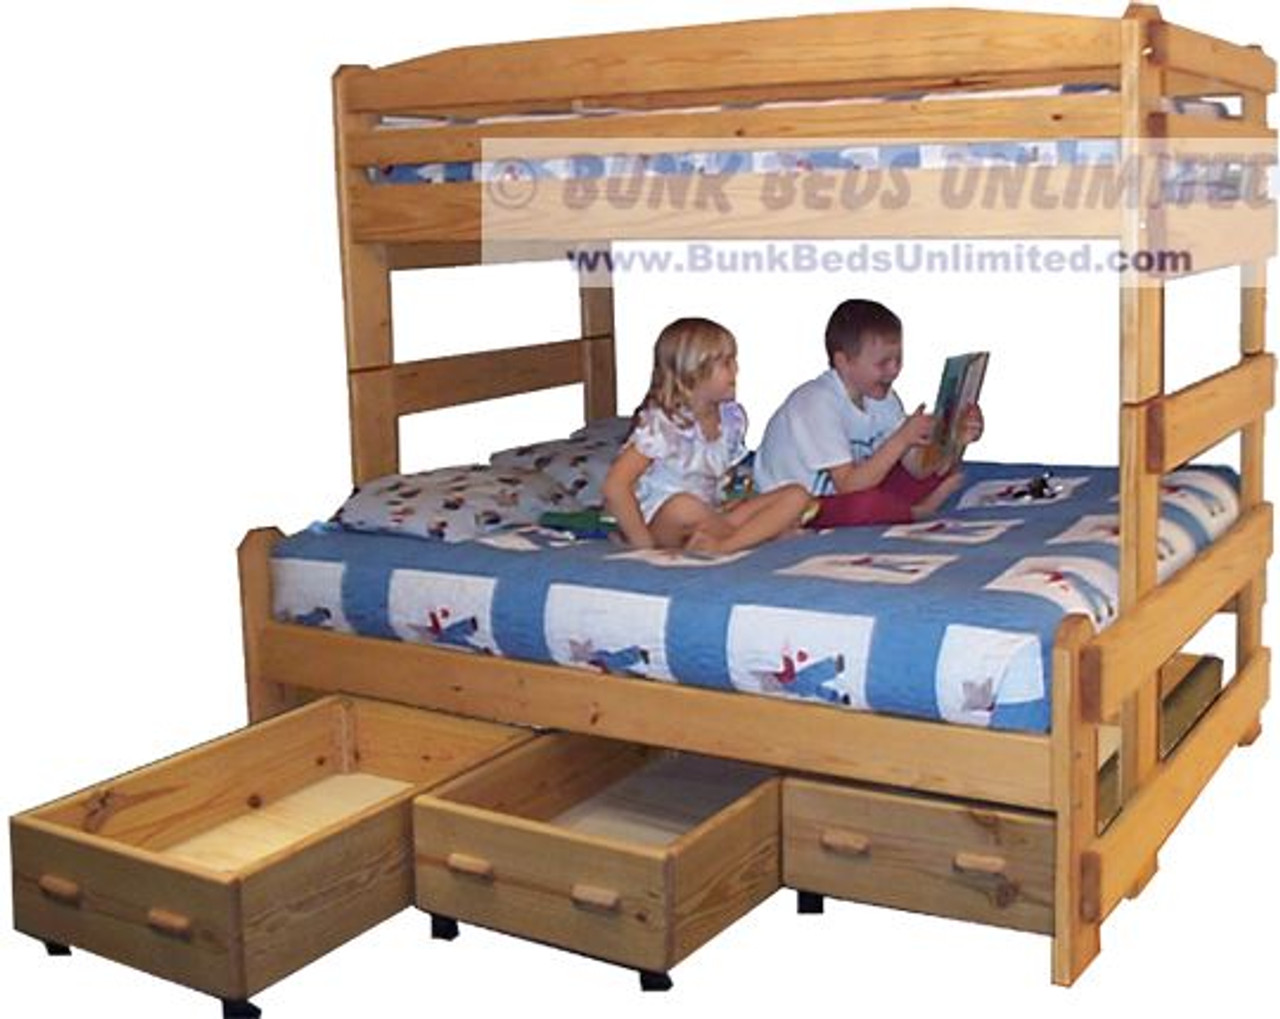 Bunk Bed Plan Full Twin Stackable With Storage Drawers